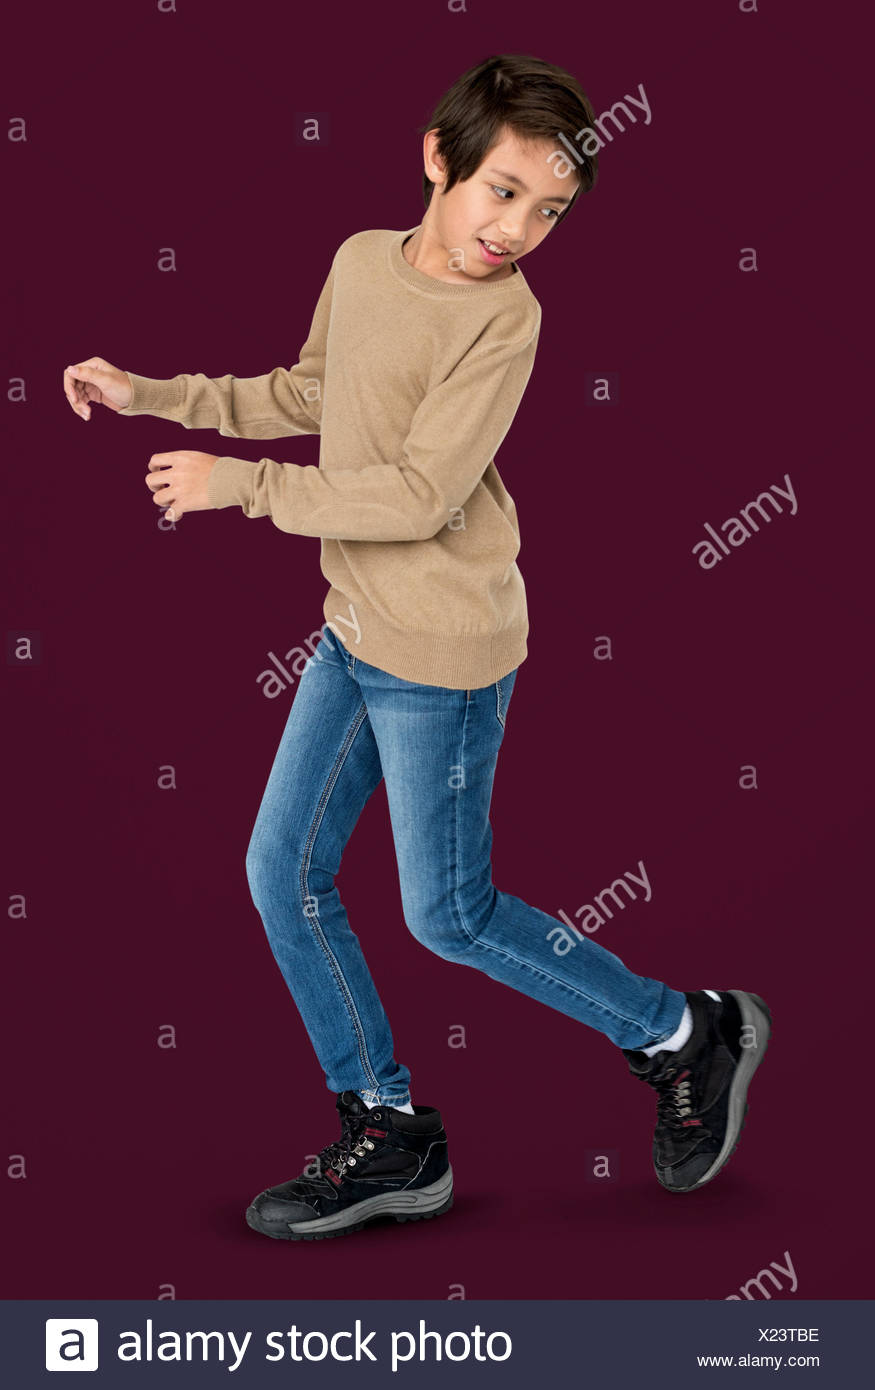 Studio People Model Shoot Race Stock Photo: 276680194 - Alamy